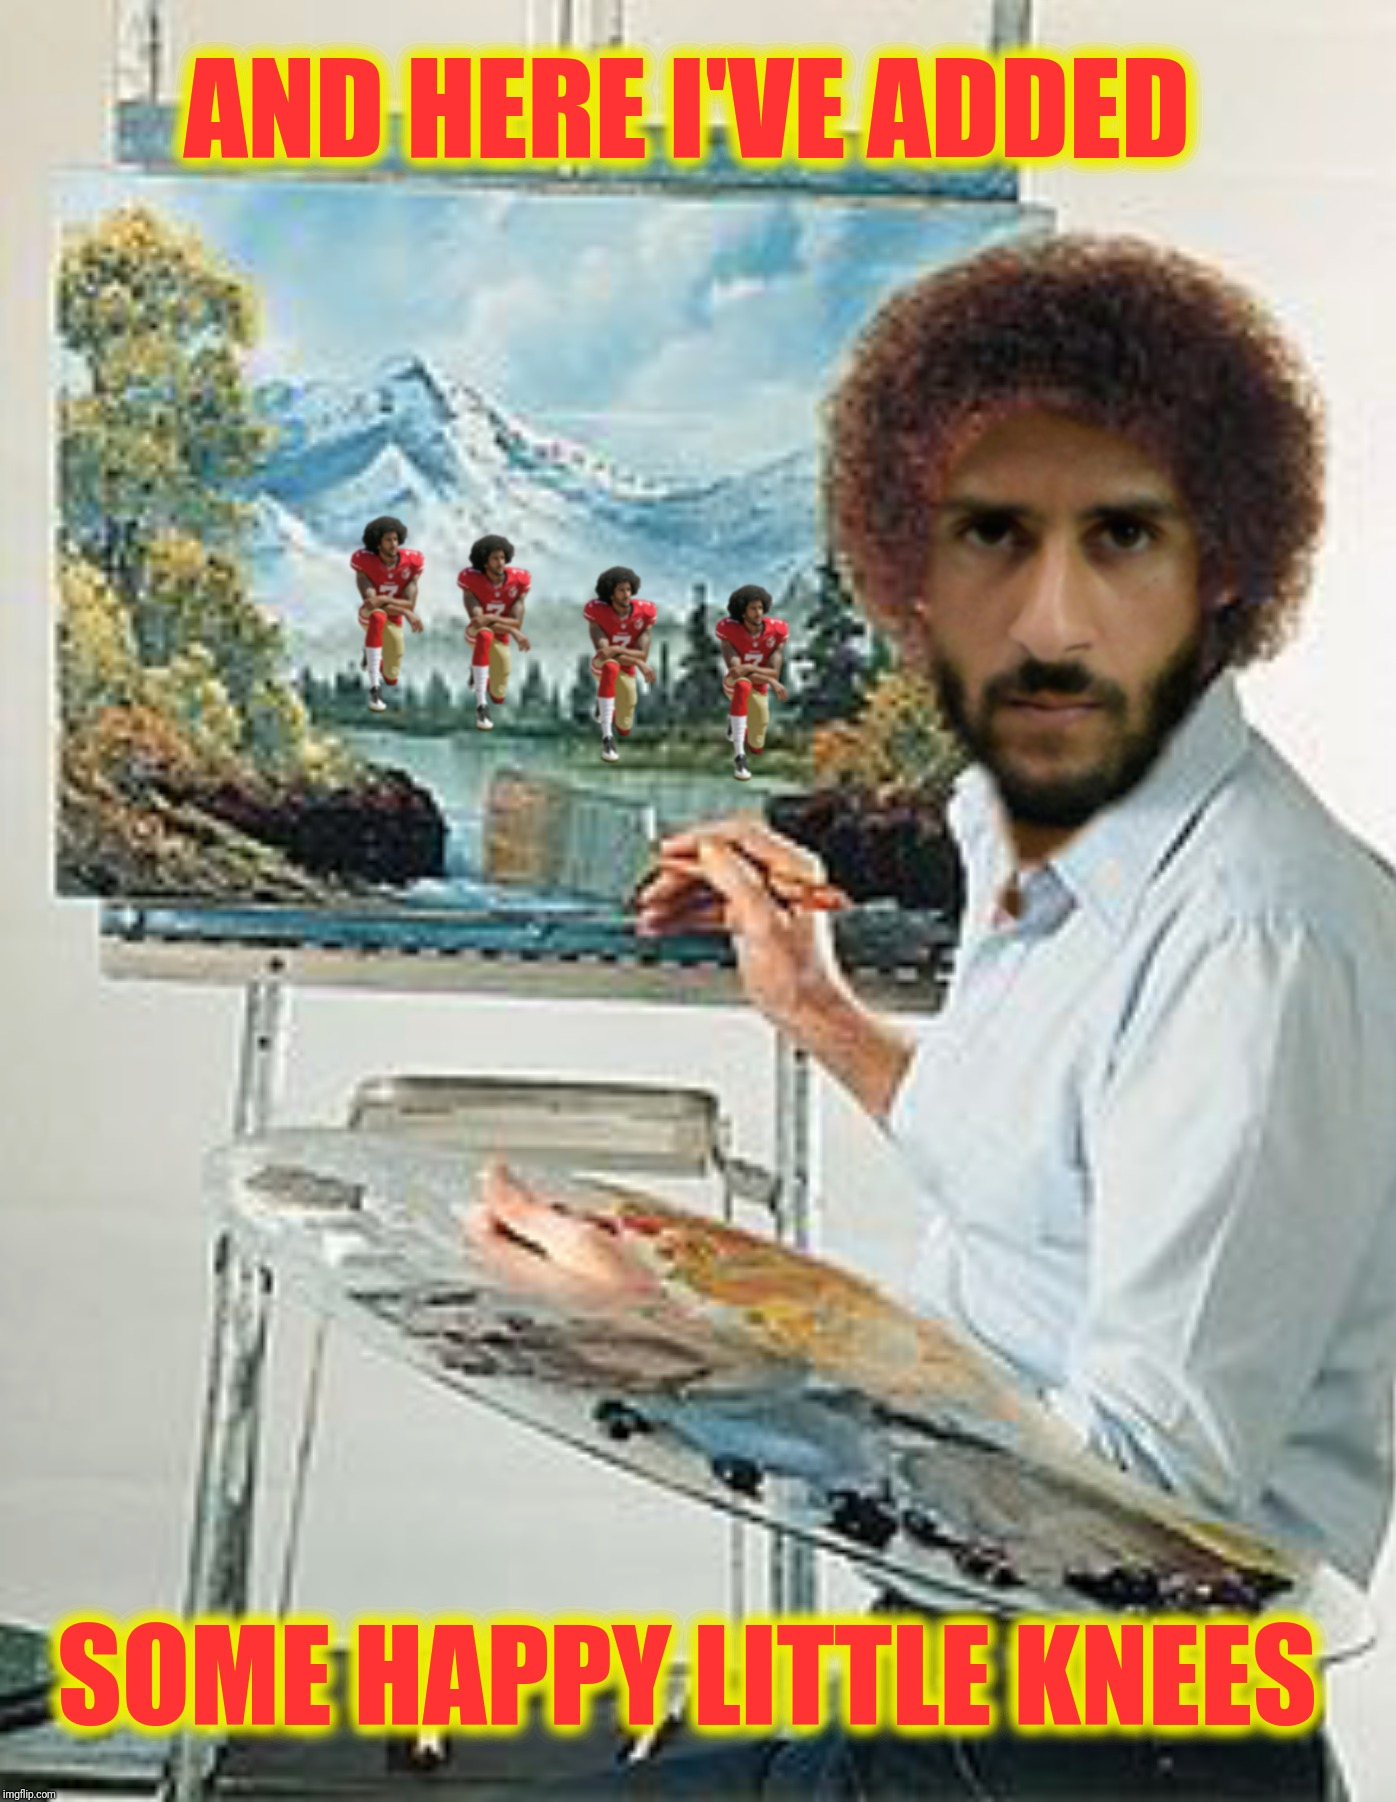 Bad Photoshop Sunday presents:  Kaepy little knees | AND HERE I'VE ADDED SOME HAPPY LITTLE KNEES | image tagged in bad photoshop sunday,bob ross,colin kaepernick,happy little trees,happy little knees | made w/ Imgflip meme maker